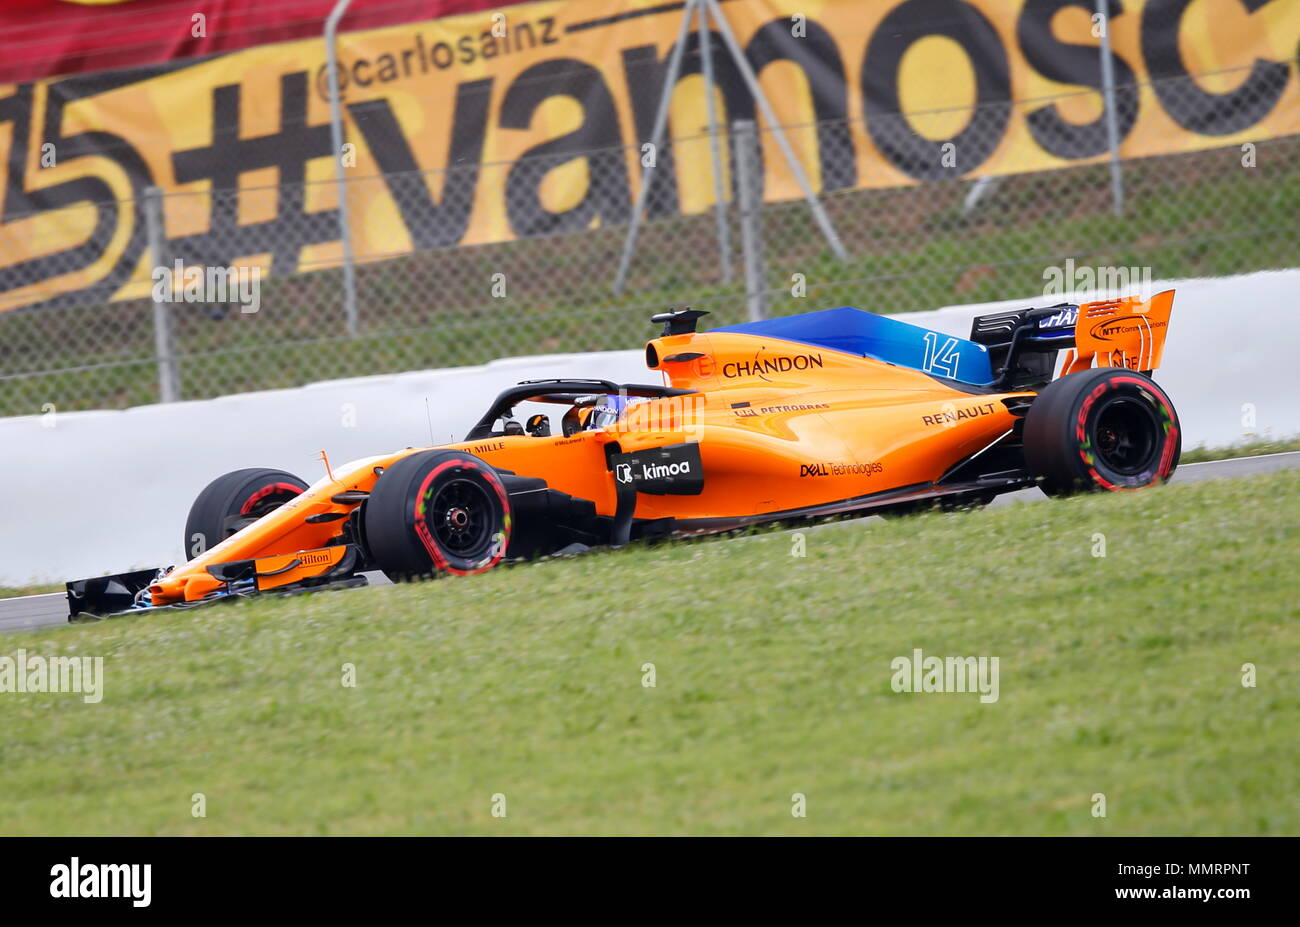 12.05.2018 fernando alonso (esp) mclaren f1 team at formula one